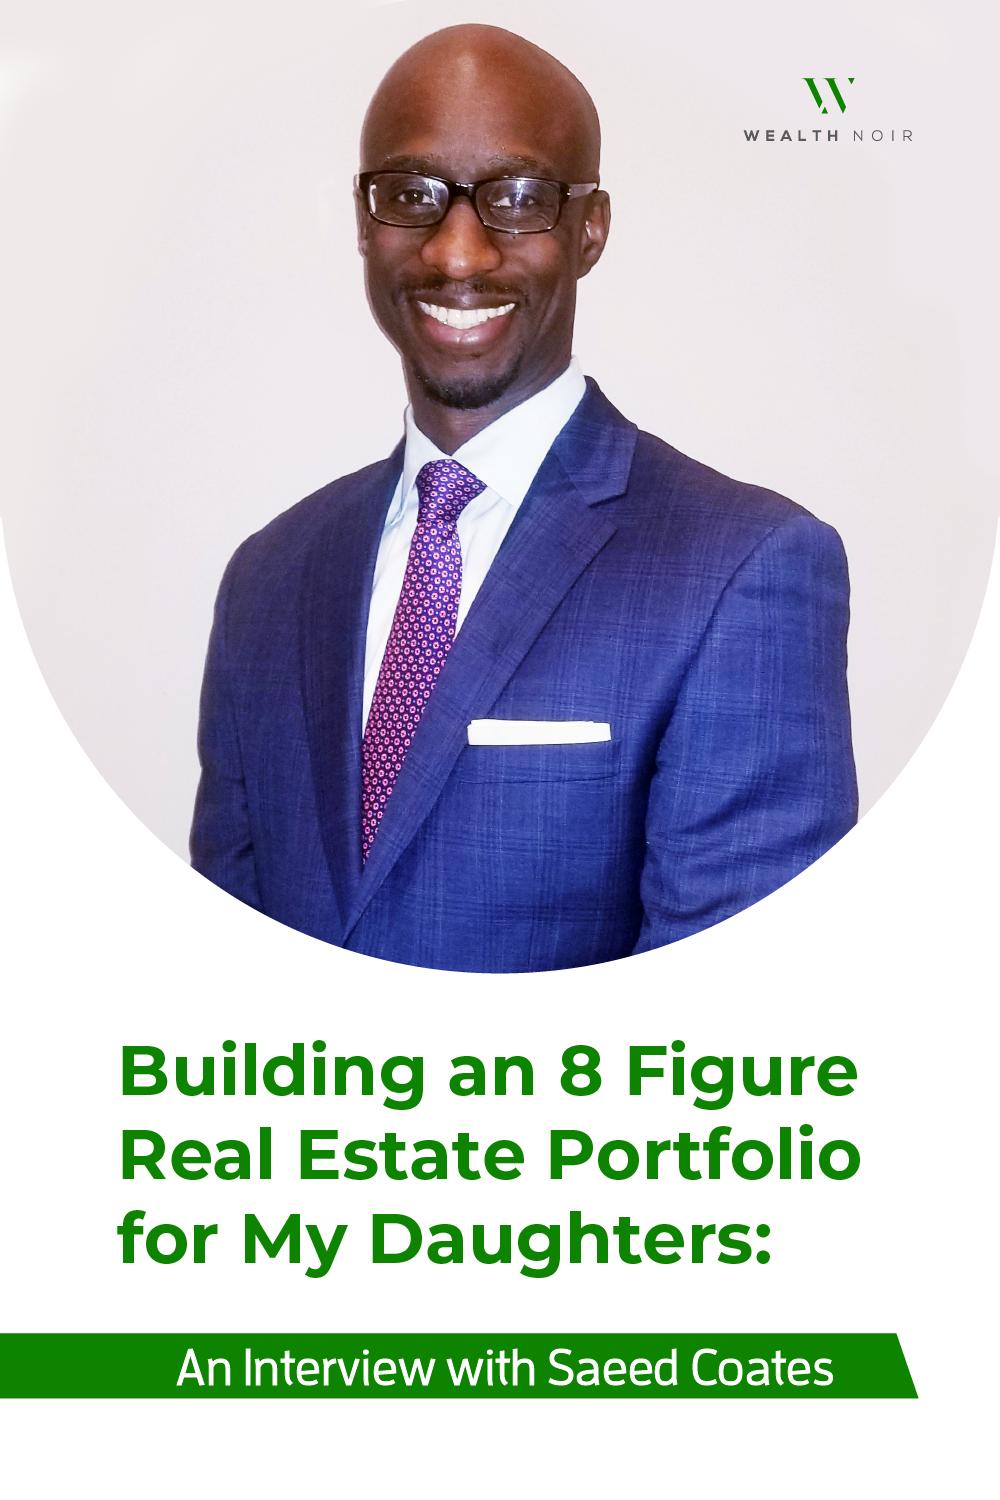 Building an 8 Figure Real Estate Portfolio for My Daughters: An Interview with Saeed Coates